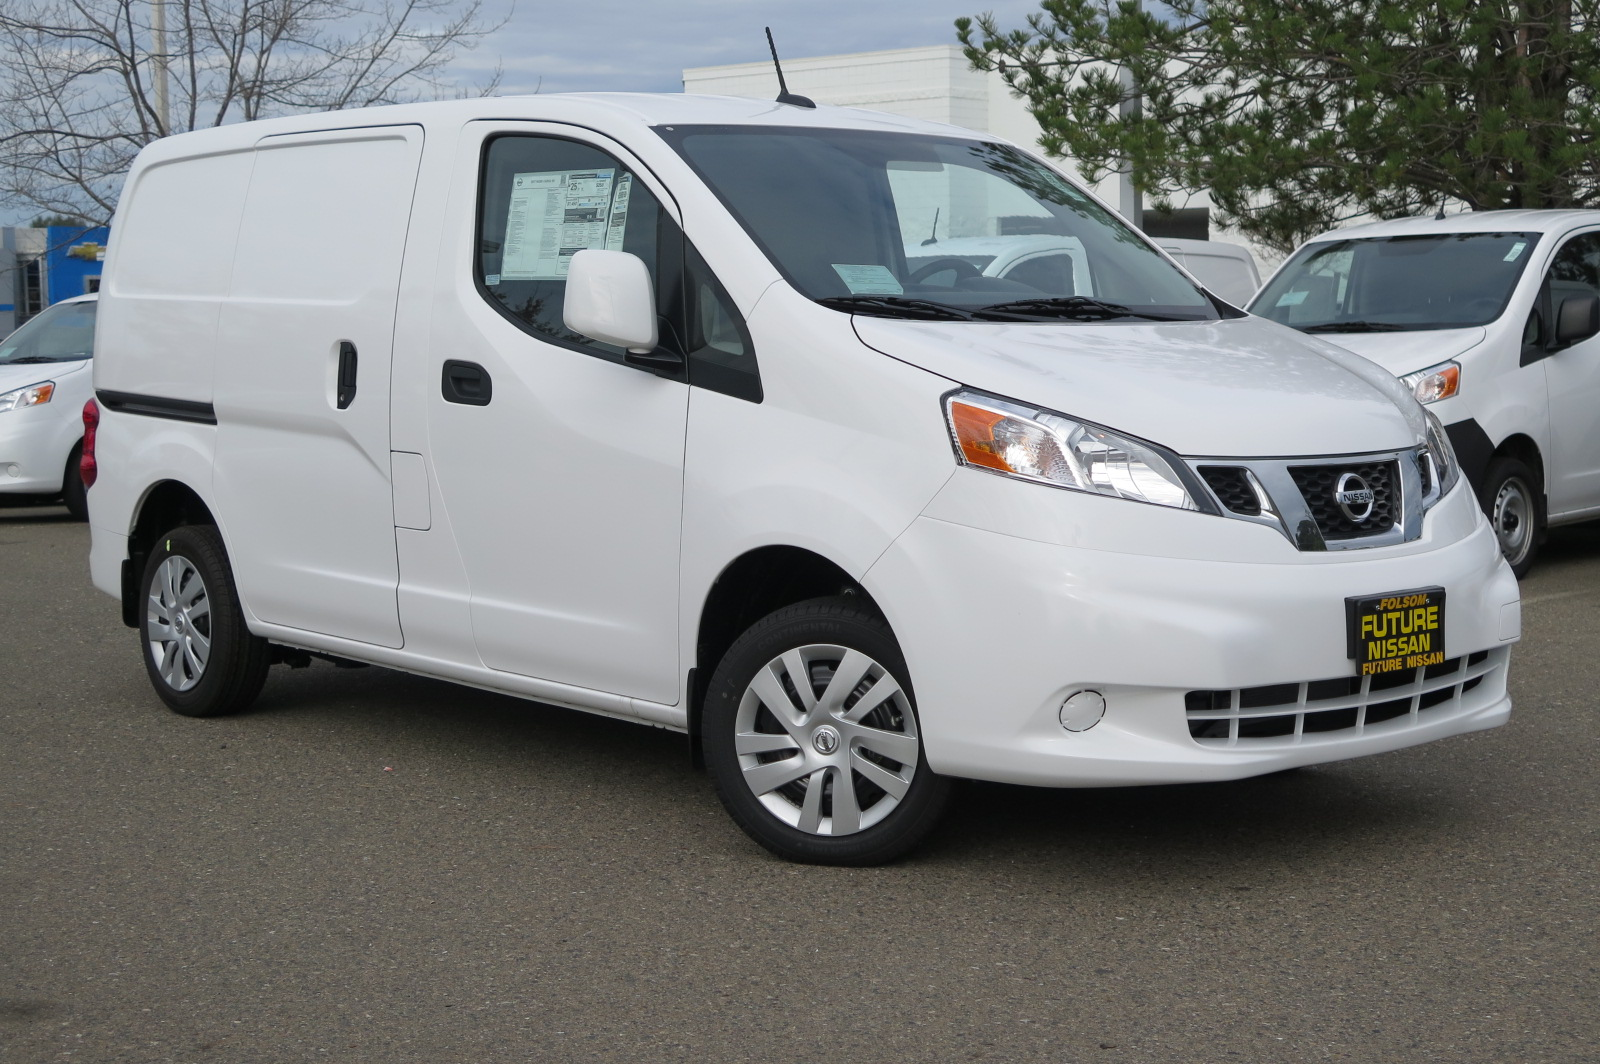 new 2017 nissan nv200 sv van compact cargo van in roseville f10846 future nissan of roseville. Black Bedroom Furniture Sets. Home Design Ideas